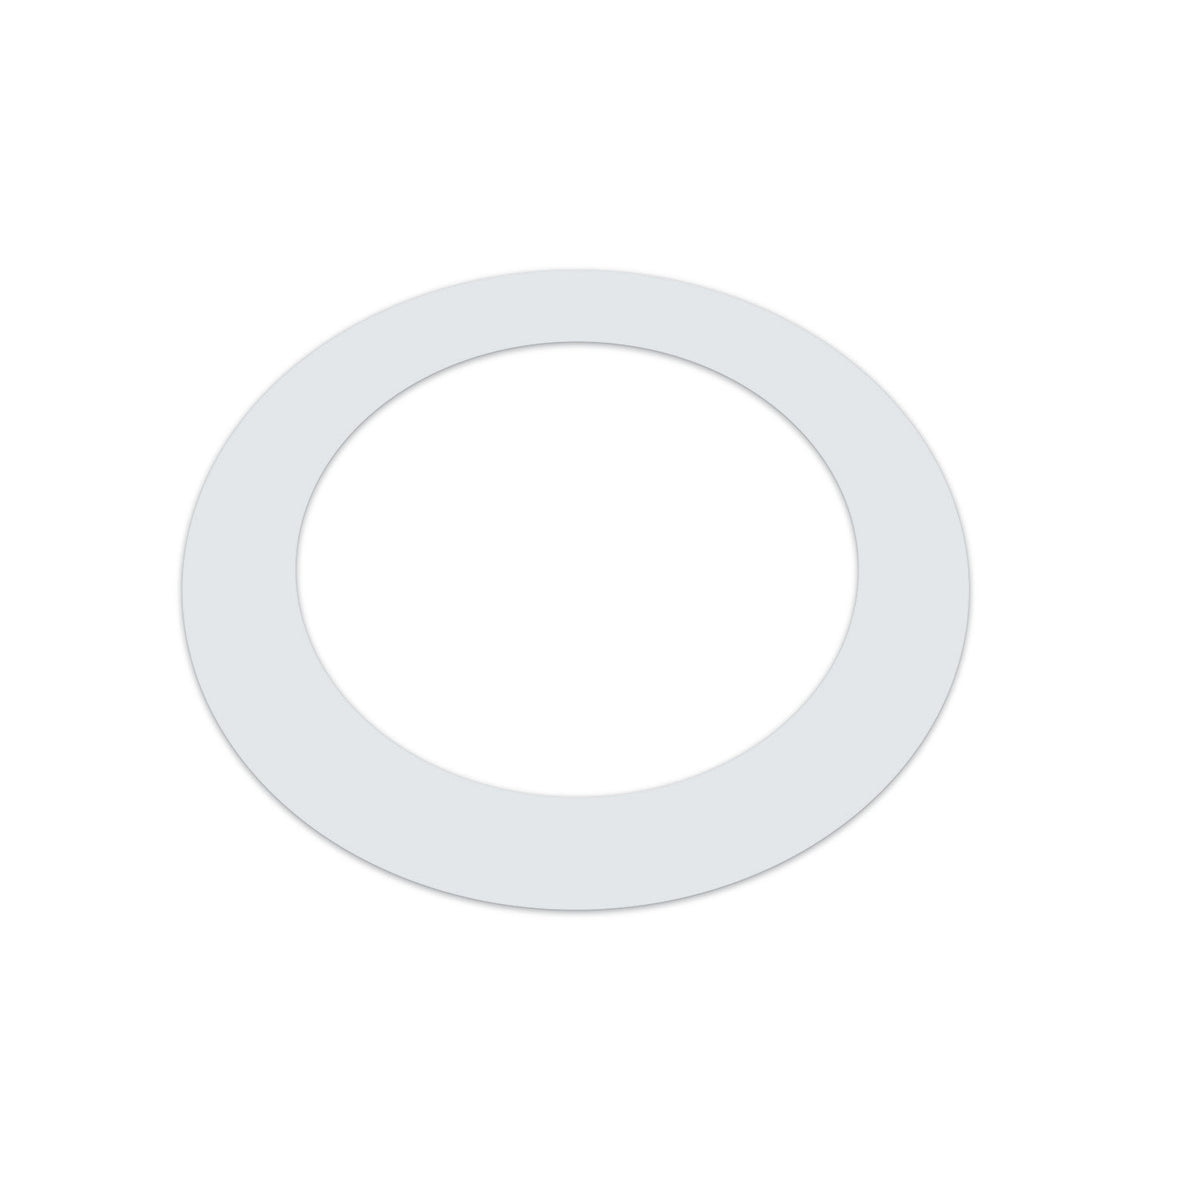 Kickport TRGWH White T-Ring Bass Drum Template/Reinforcement Ring